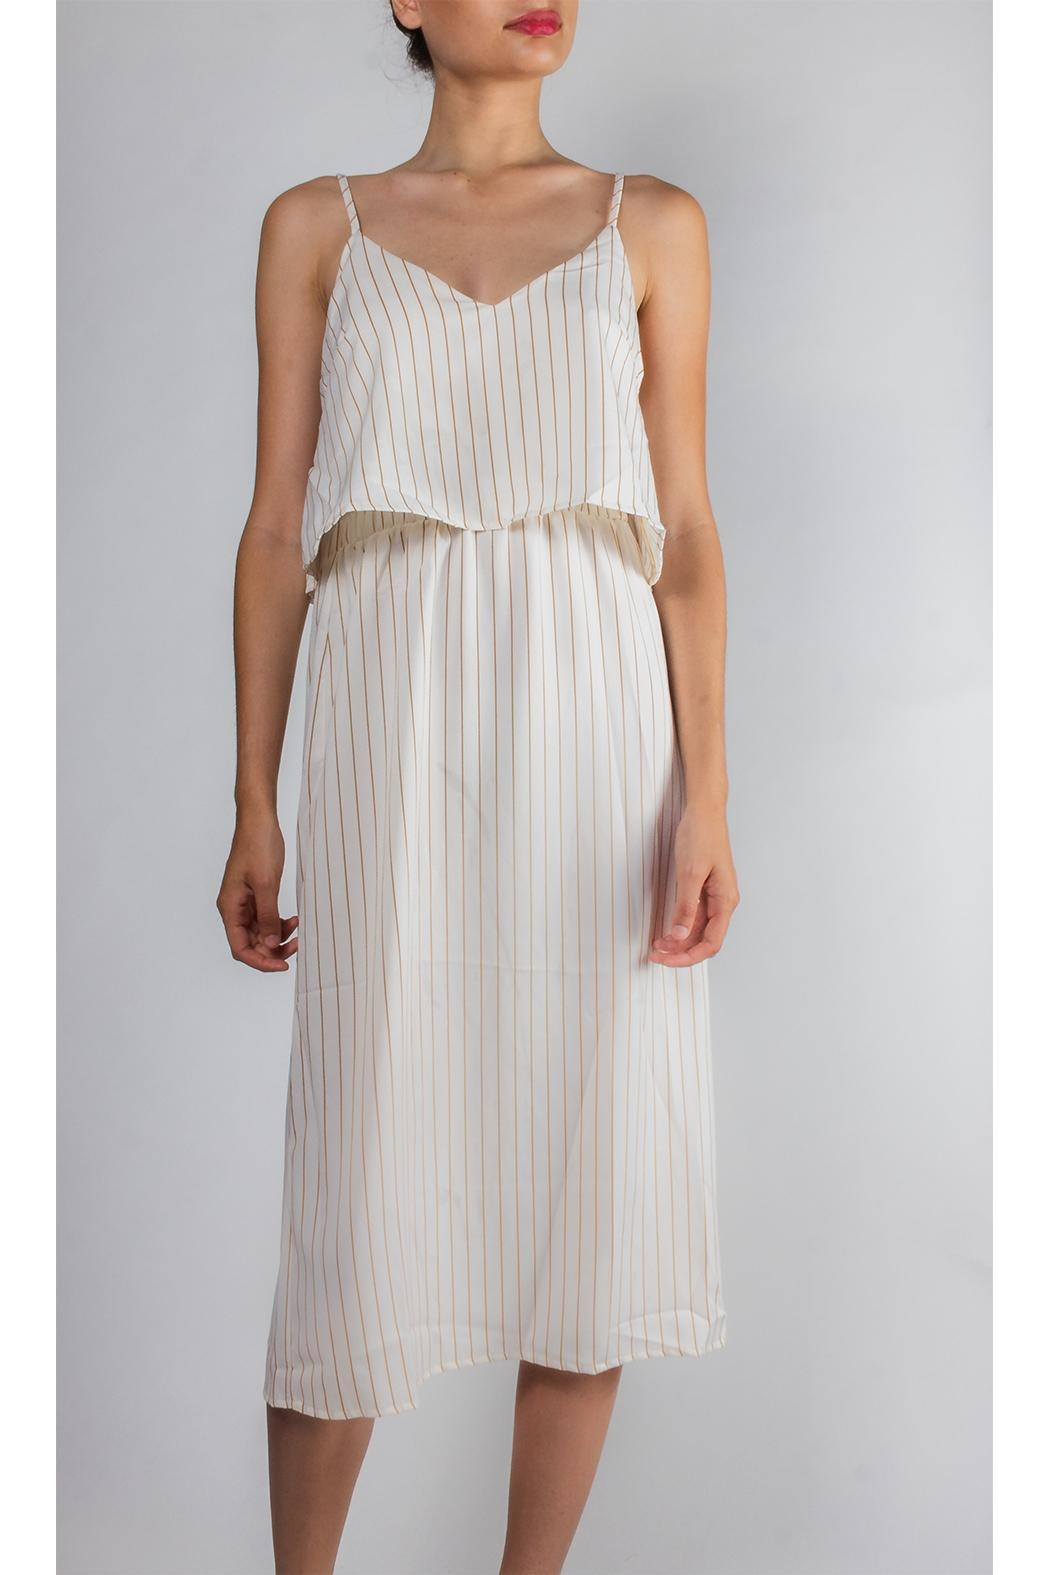 Emory Park Tiered Striped Dress - Main Image